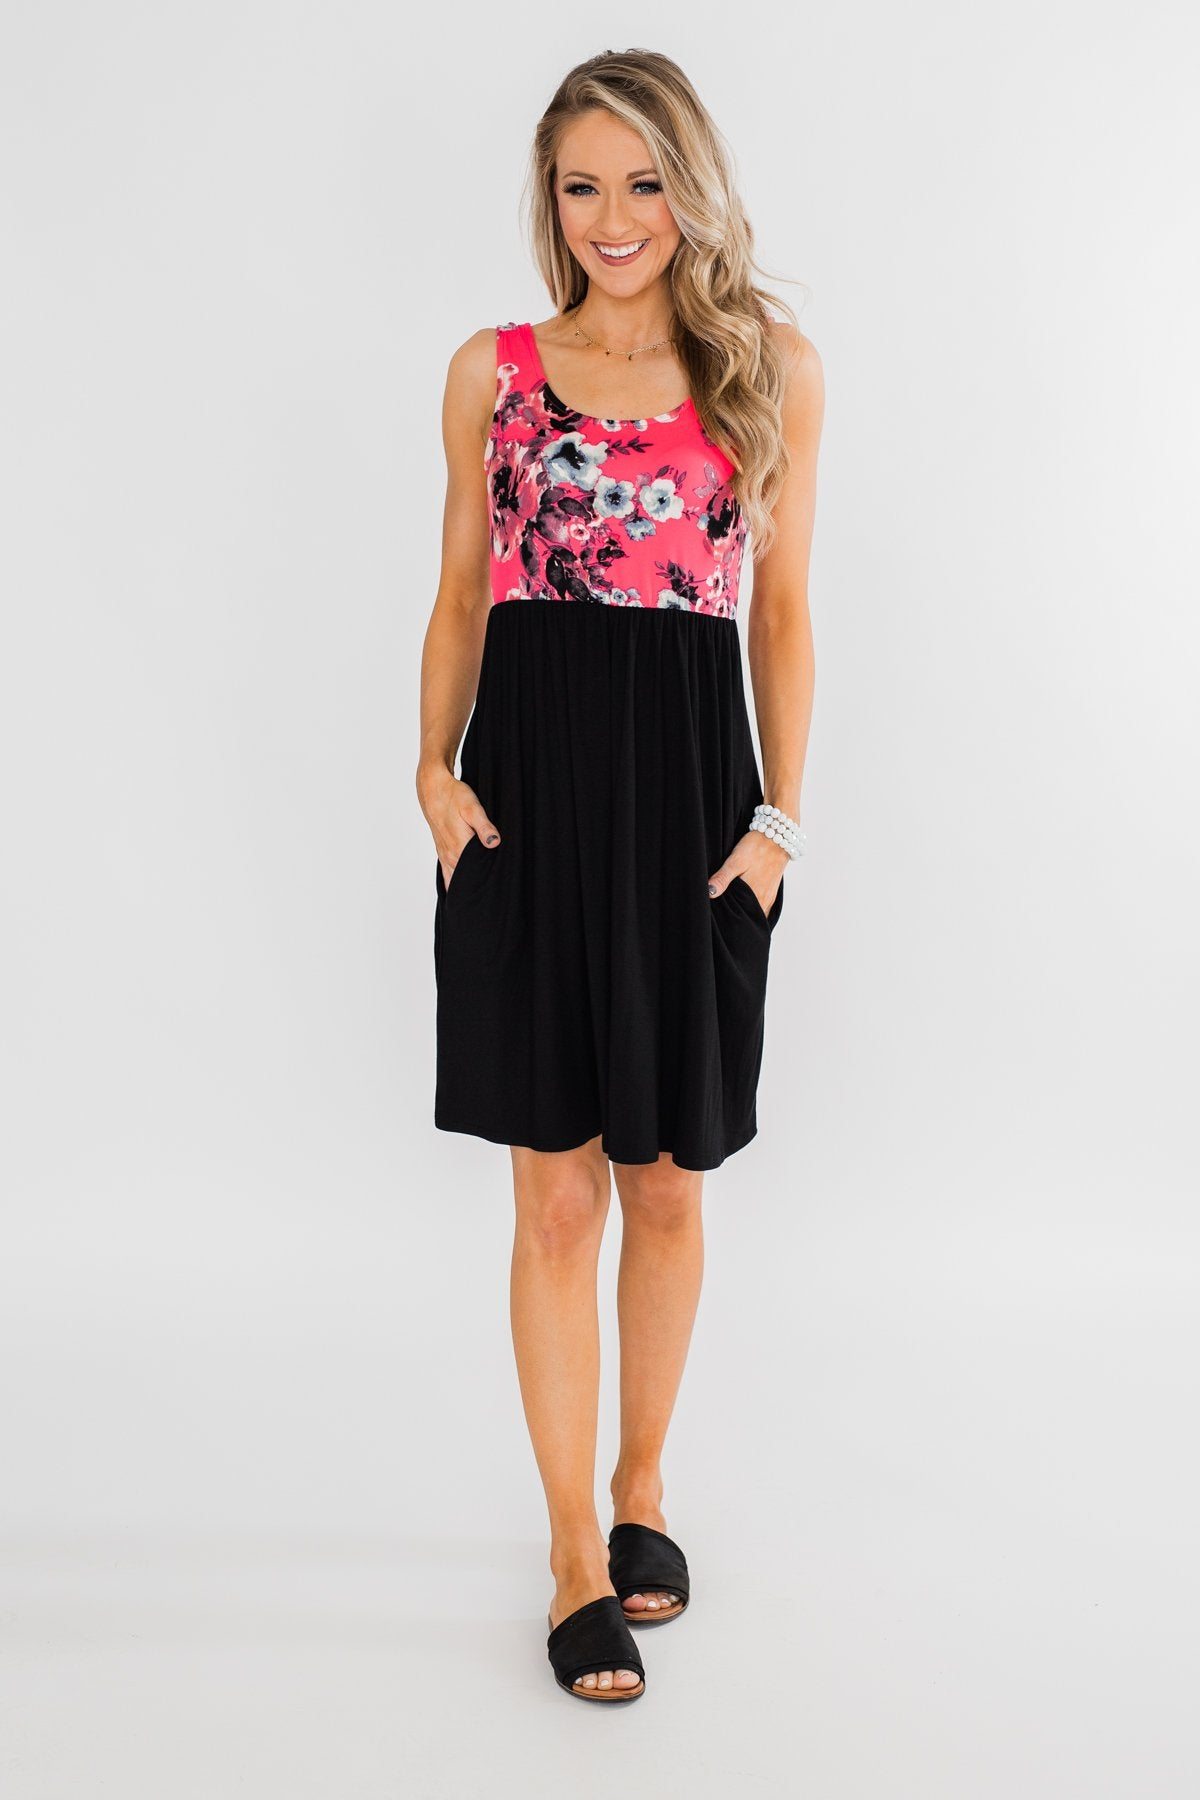 Attracted to You Floral Dress- Neon Pink & Black